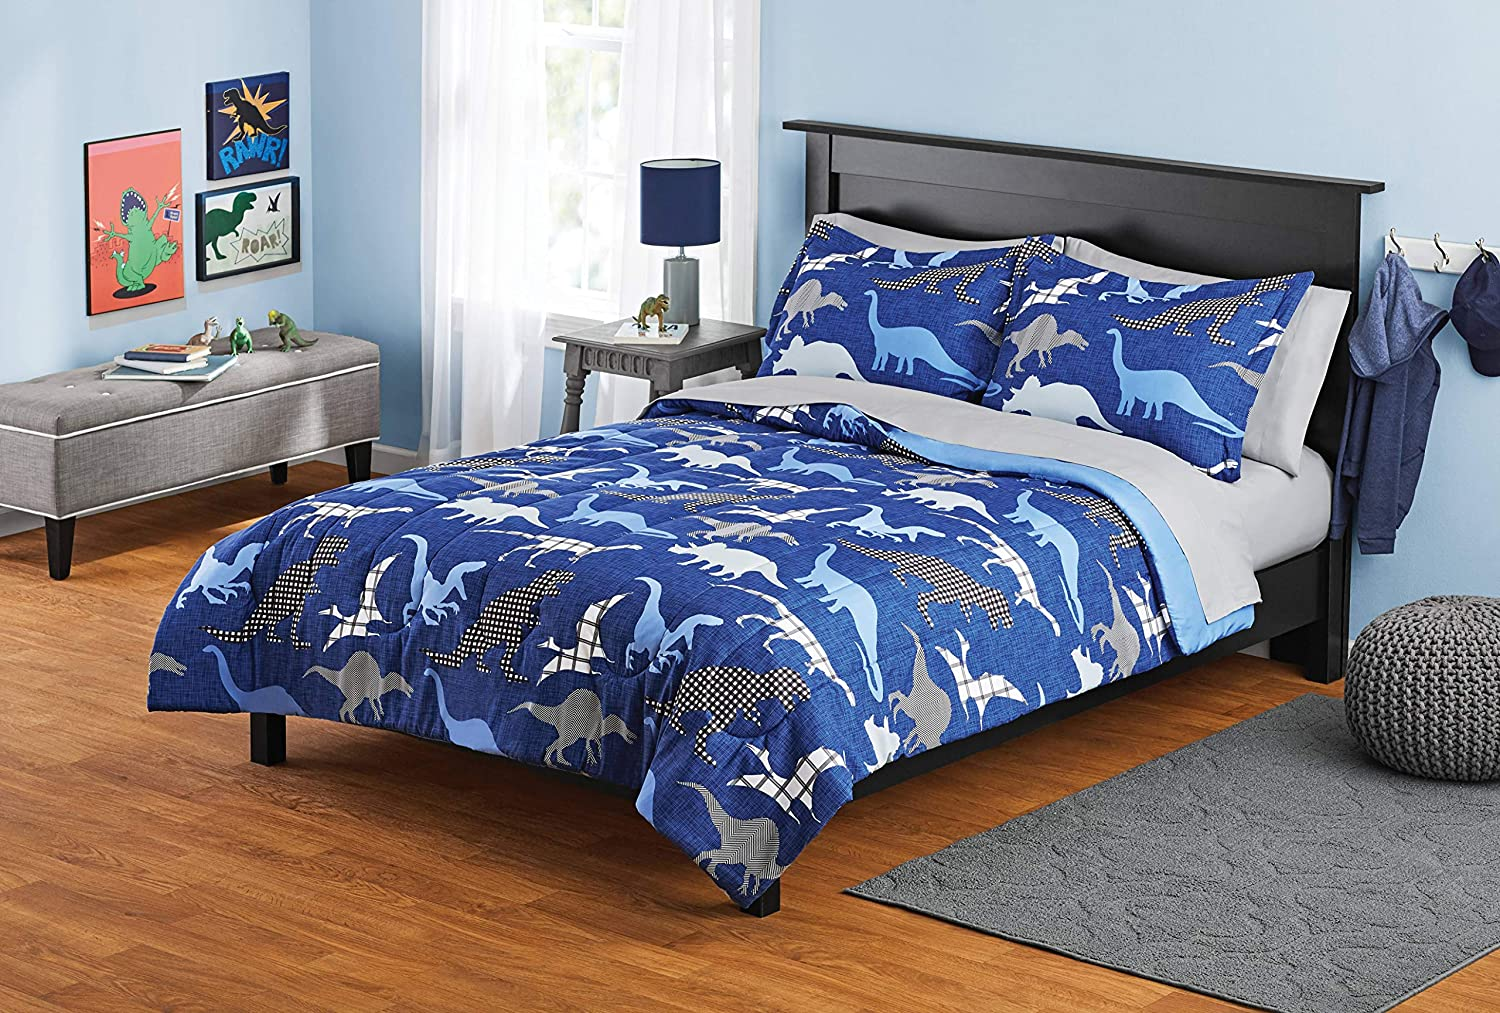 MS Zone 7PC Kids Bed in a Bag Microfiber Comforter Set Blue Dinosaurs Full